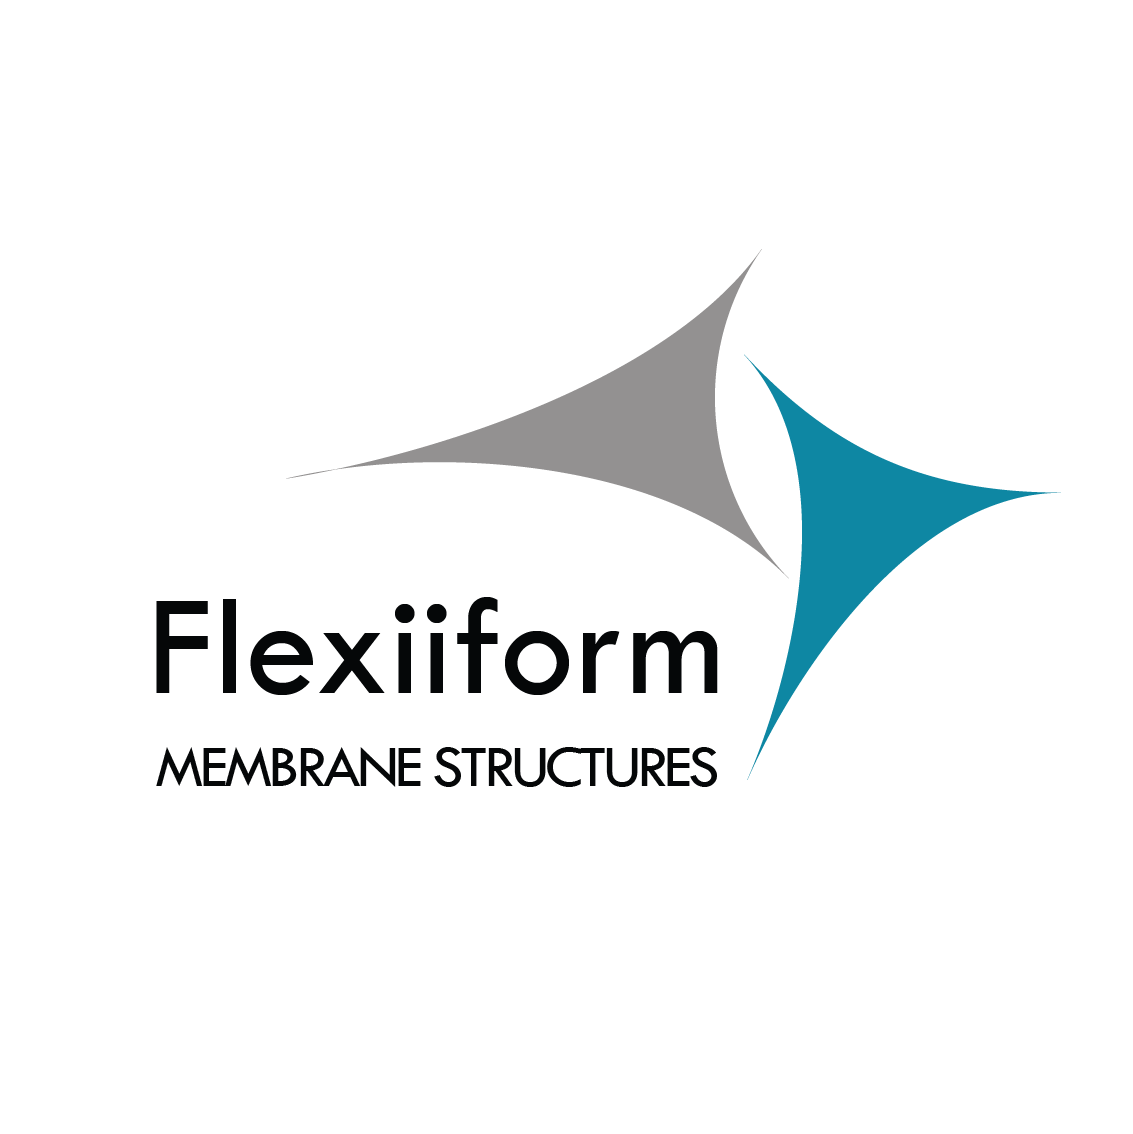 Flexiiform logo